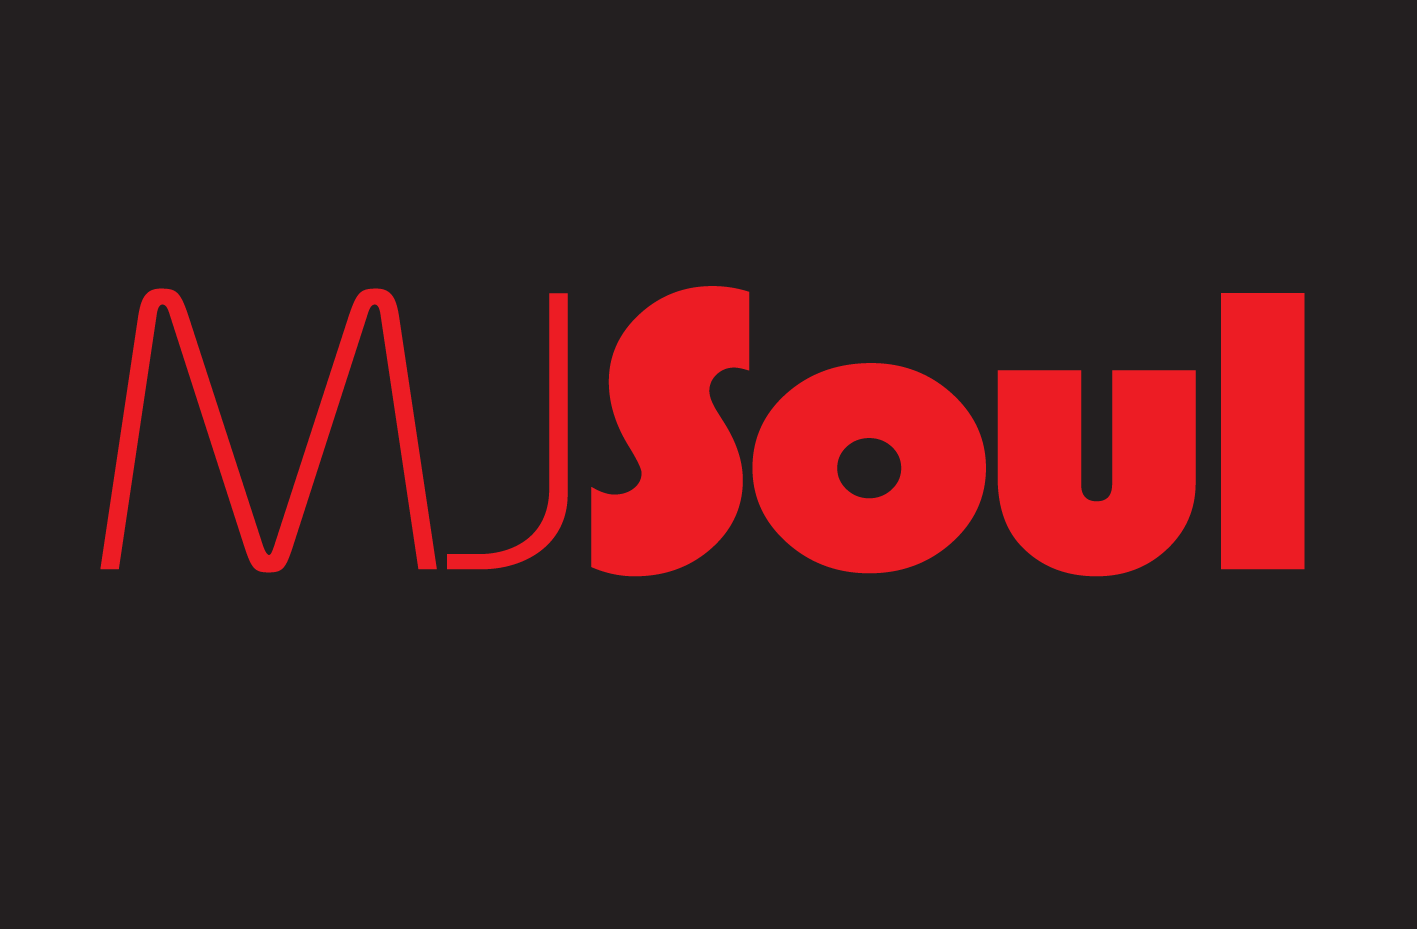 MJSoul red on black logo